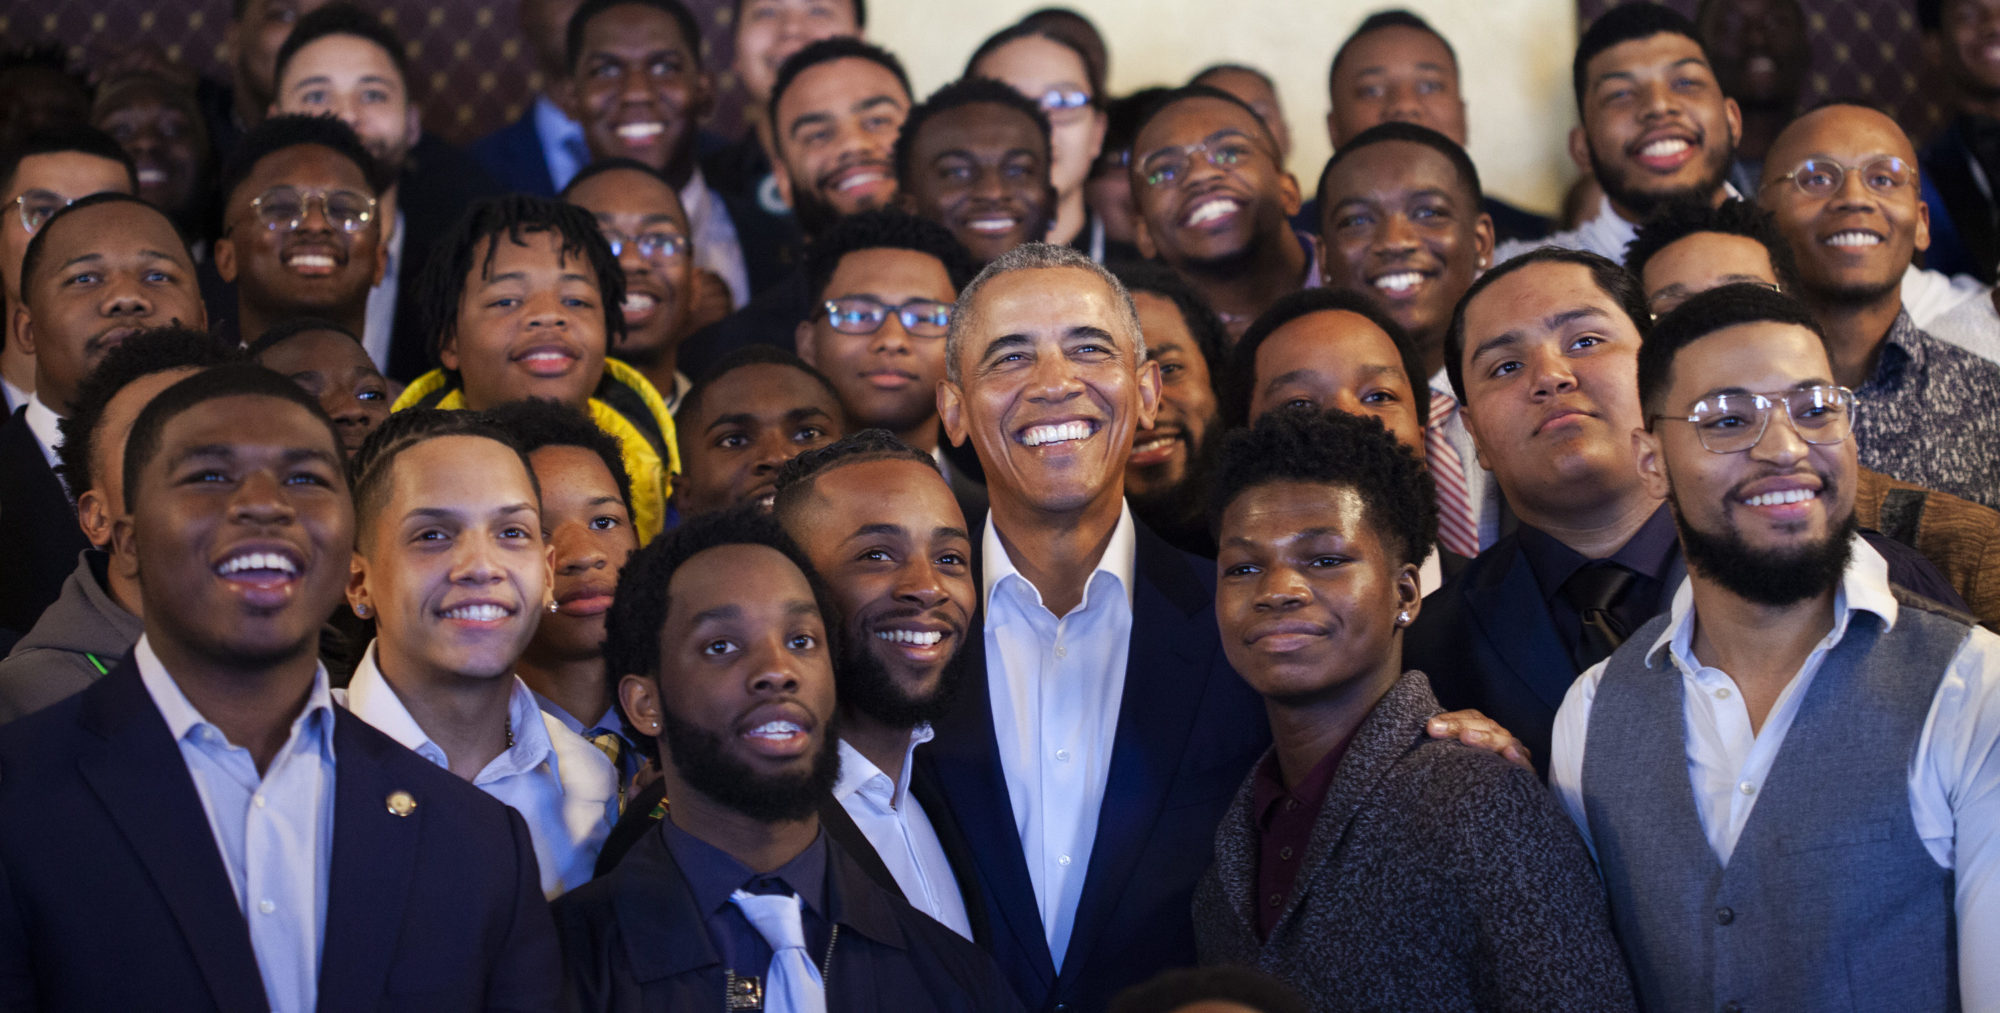 President Obama poses with young participants at MBK Rising! in Oakland.